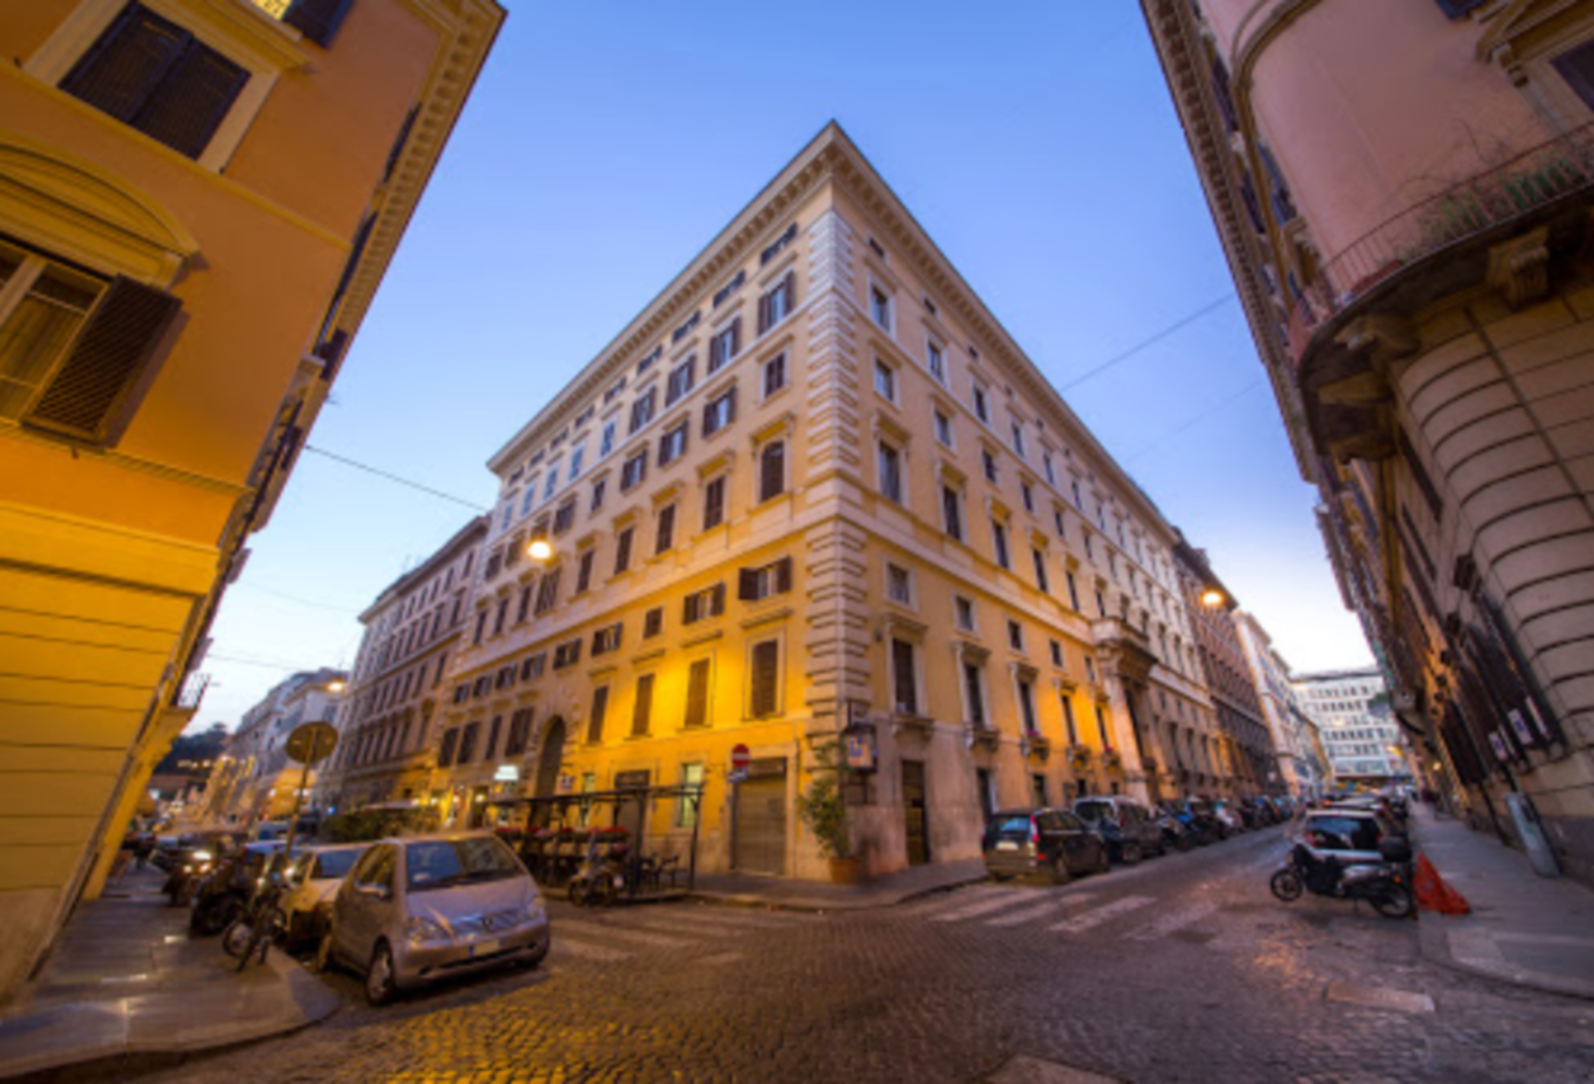 A view of a city street at Roma Central Guest House.